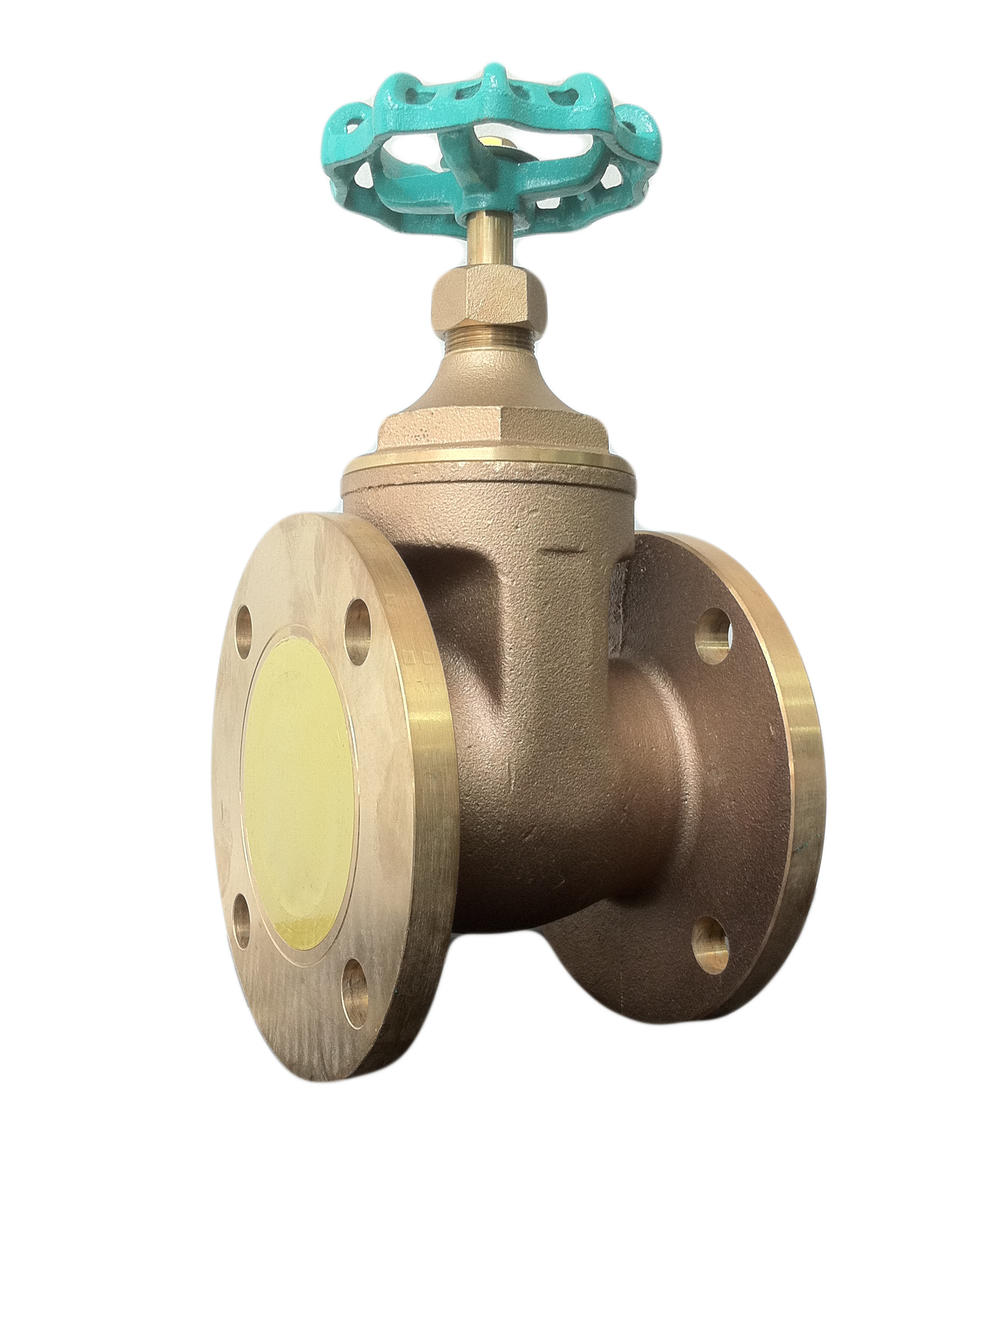 YASIKI Bronze Gate Valves